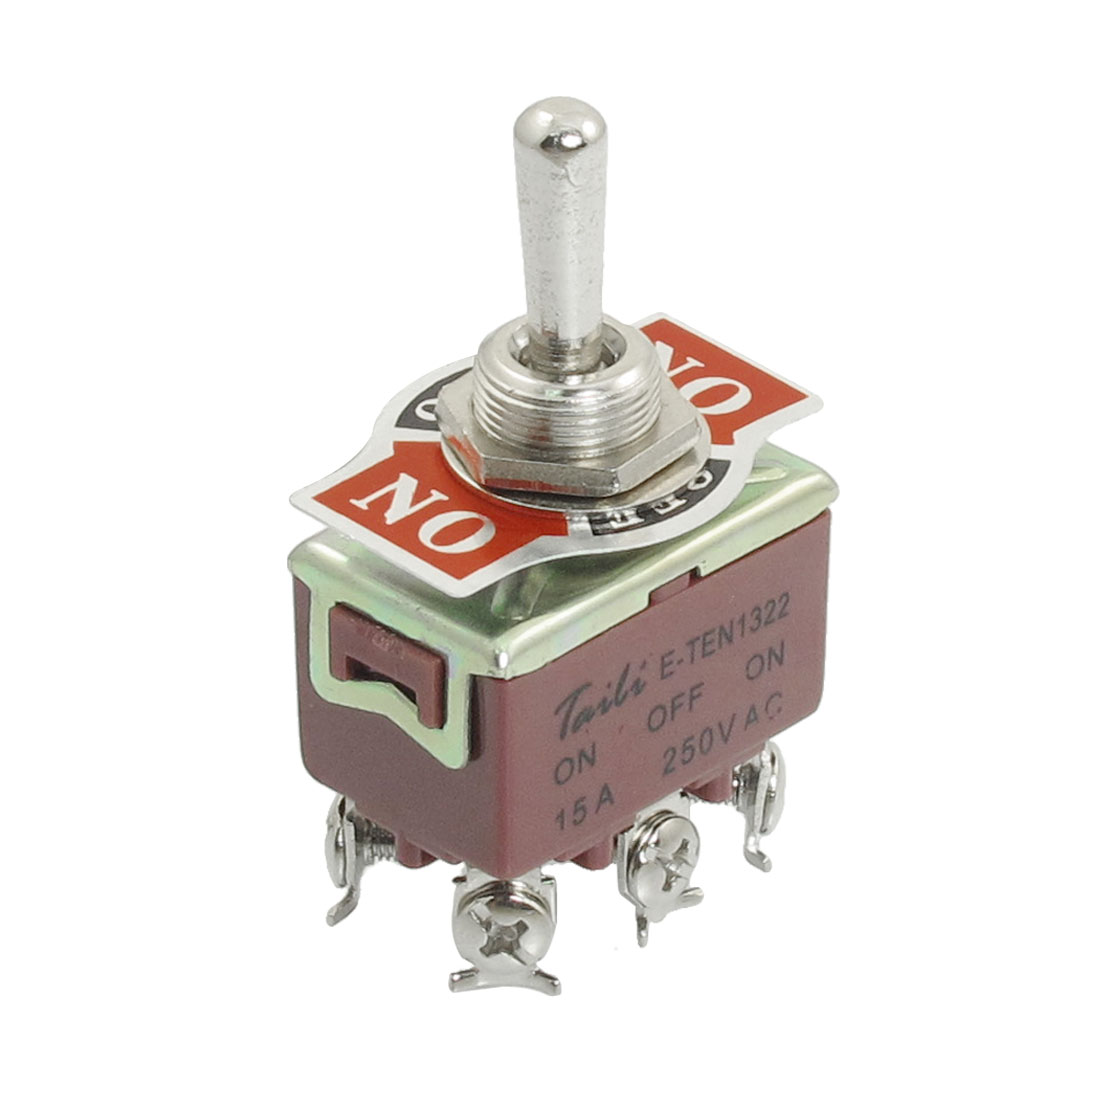 AC 250V 15A 12mm Diameter Screw Mount Toggle Switch DPDT 6 Pins